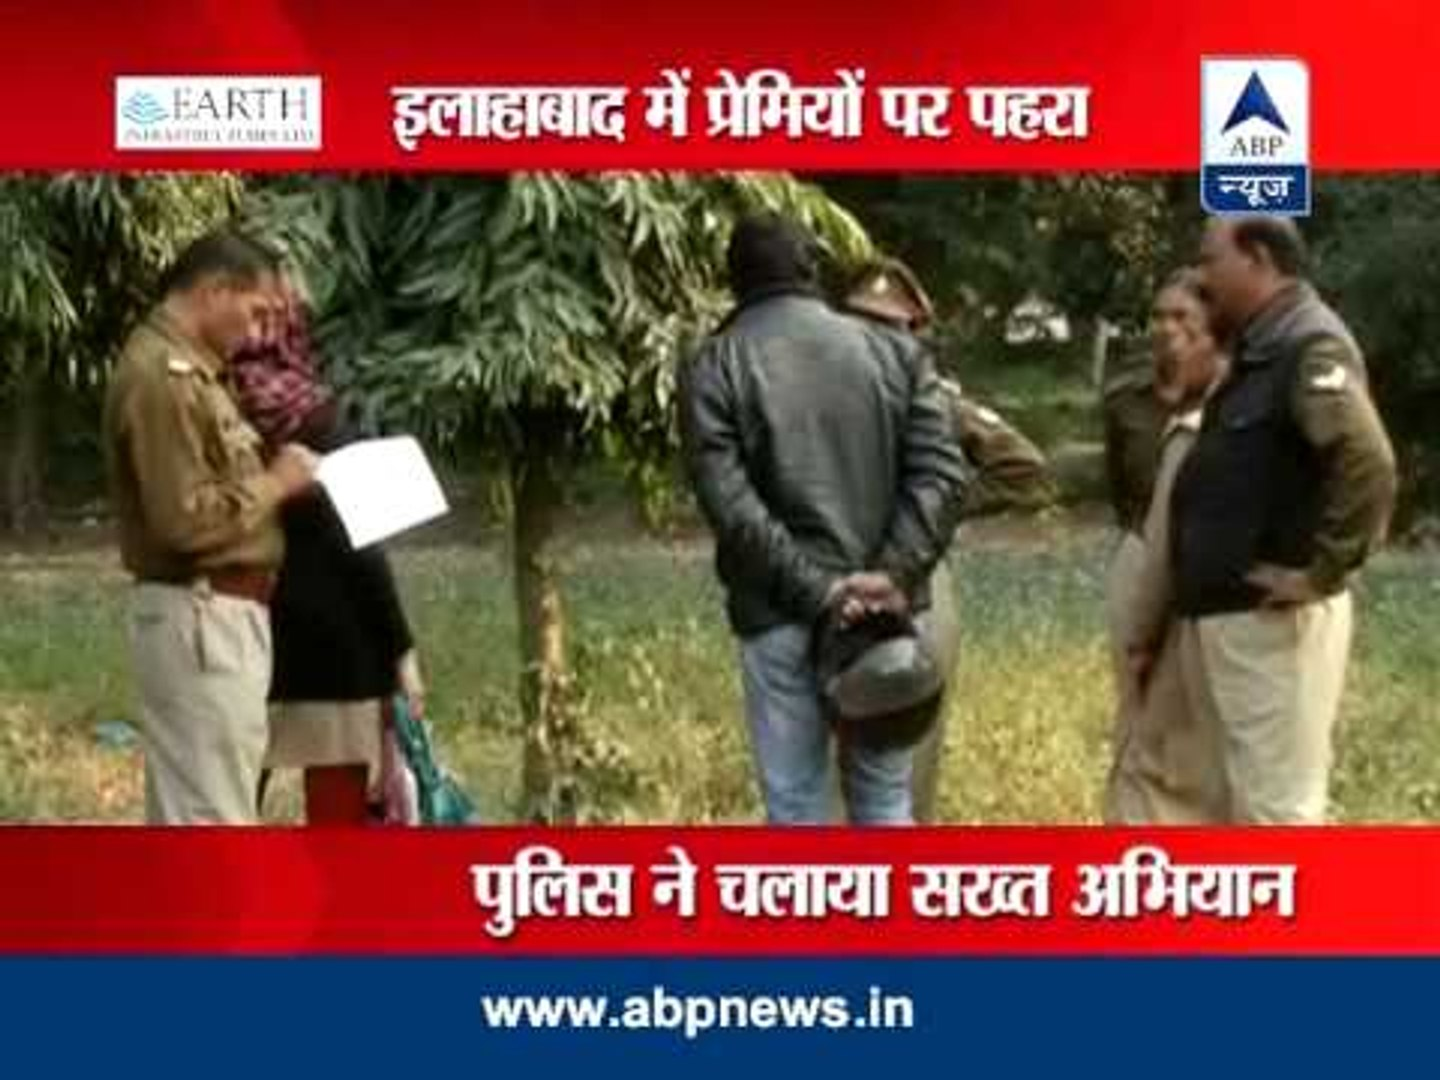 Allahabad police keeps a close watch on couples in parks